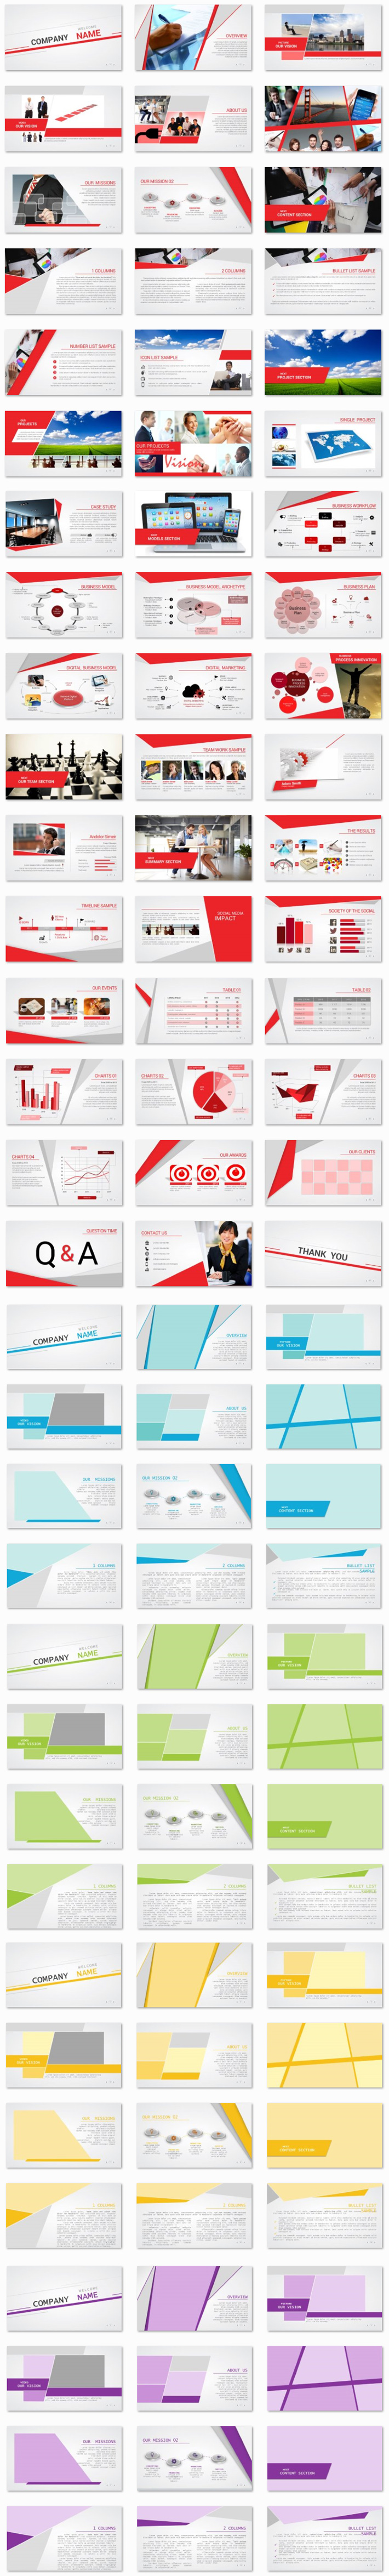 NEW Power Presentation: Business Angles PPT Premium PowerPoint Presentation Template Slide Set